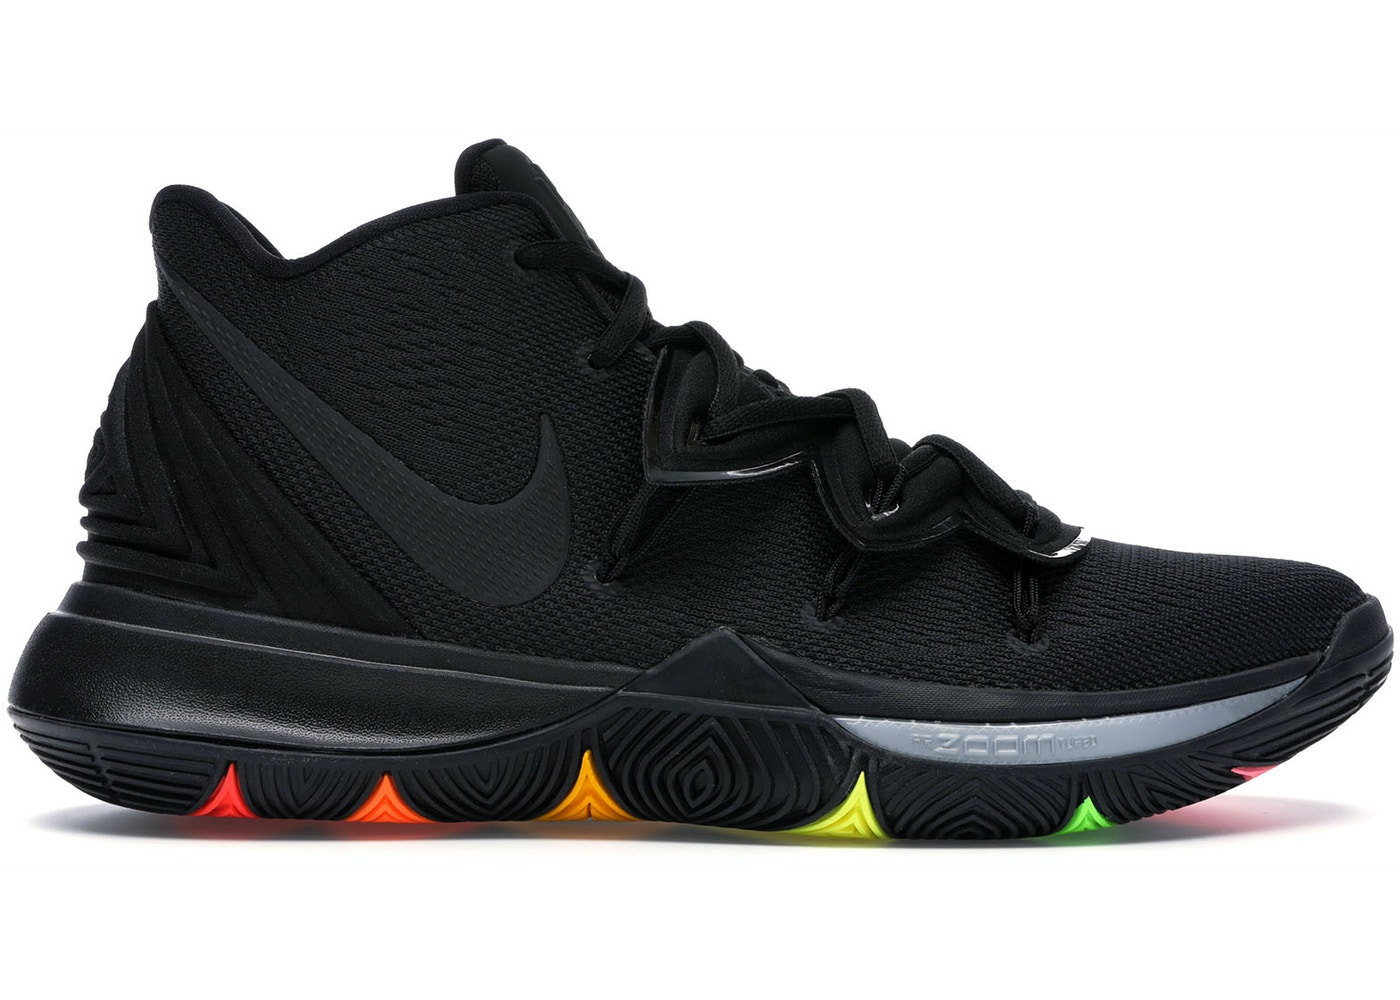 reputable site 6087d 5e718 Buy Nike Basketball Kyrie Shoes & Deadstock Sneakers